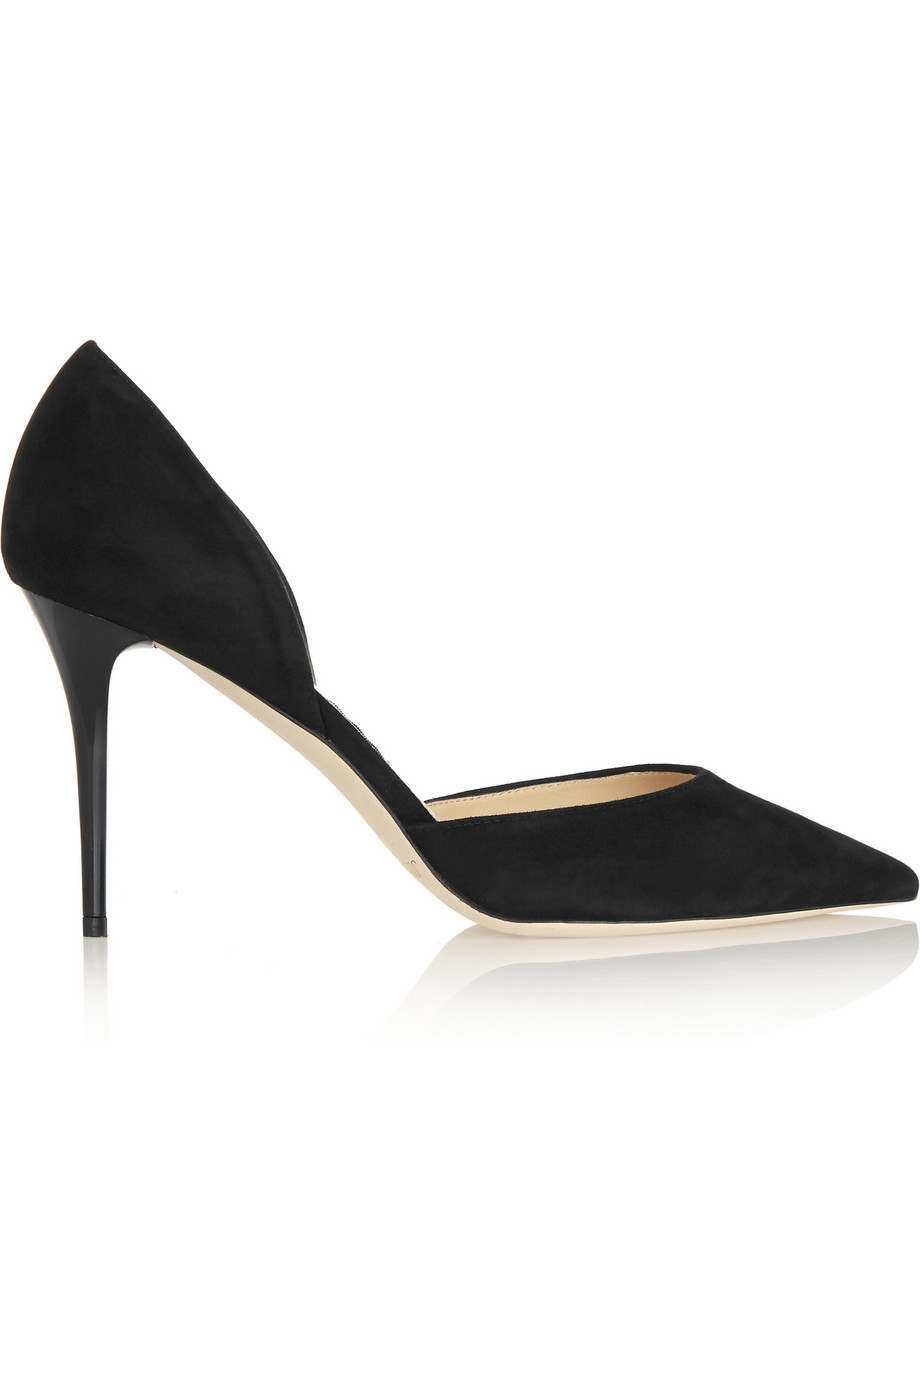 Jimmy Choo - Escarpins (425 €)